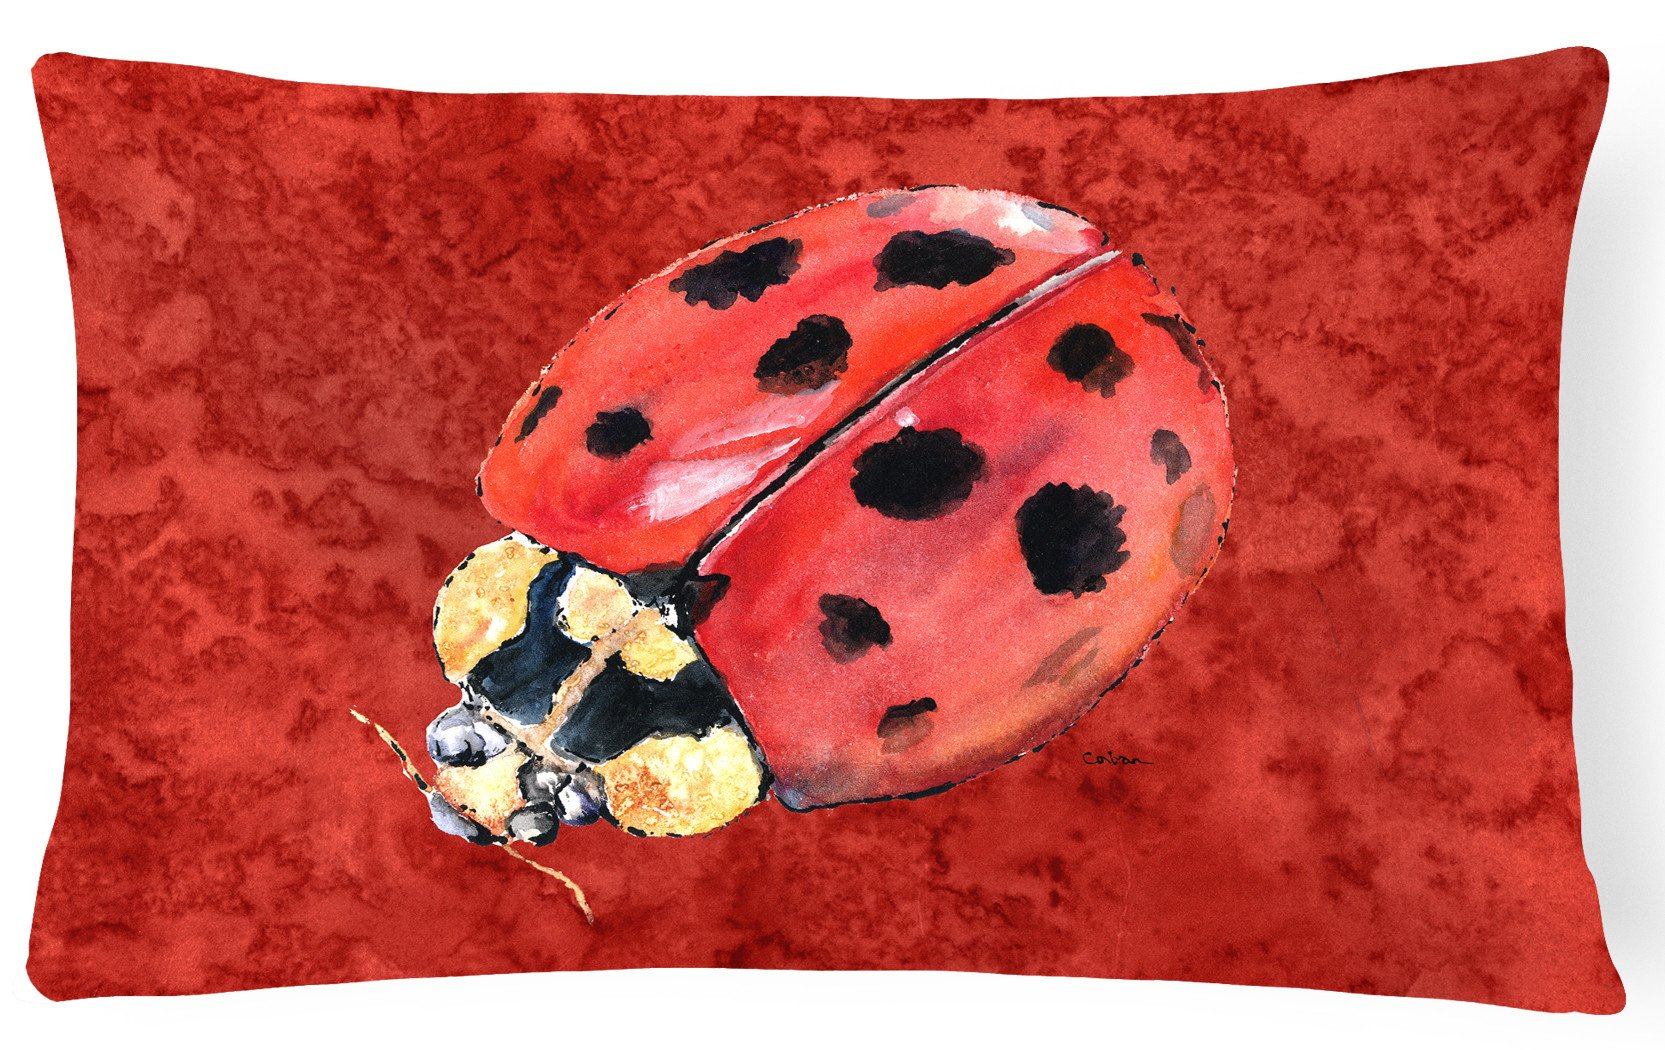 Lady Bug on Deep Red   Canvas Fabric Decorative Pillow by Caroline's Treasures